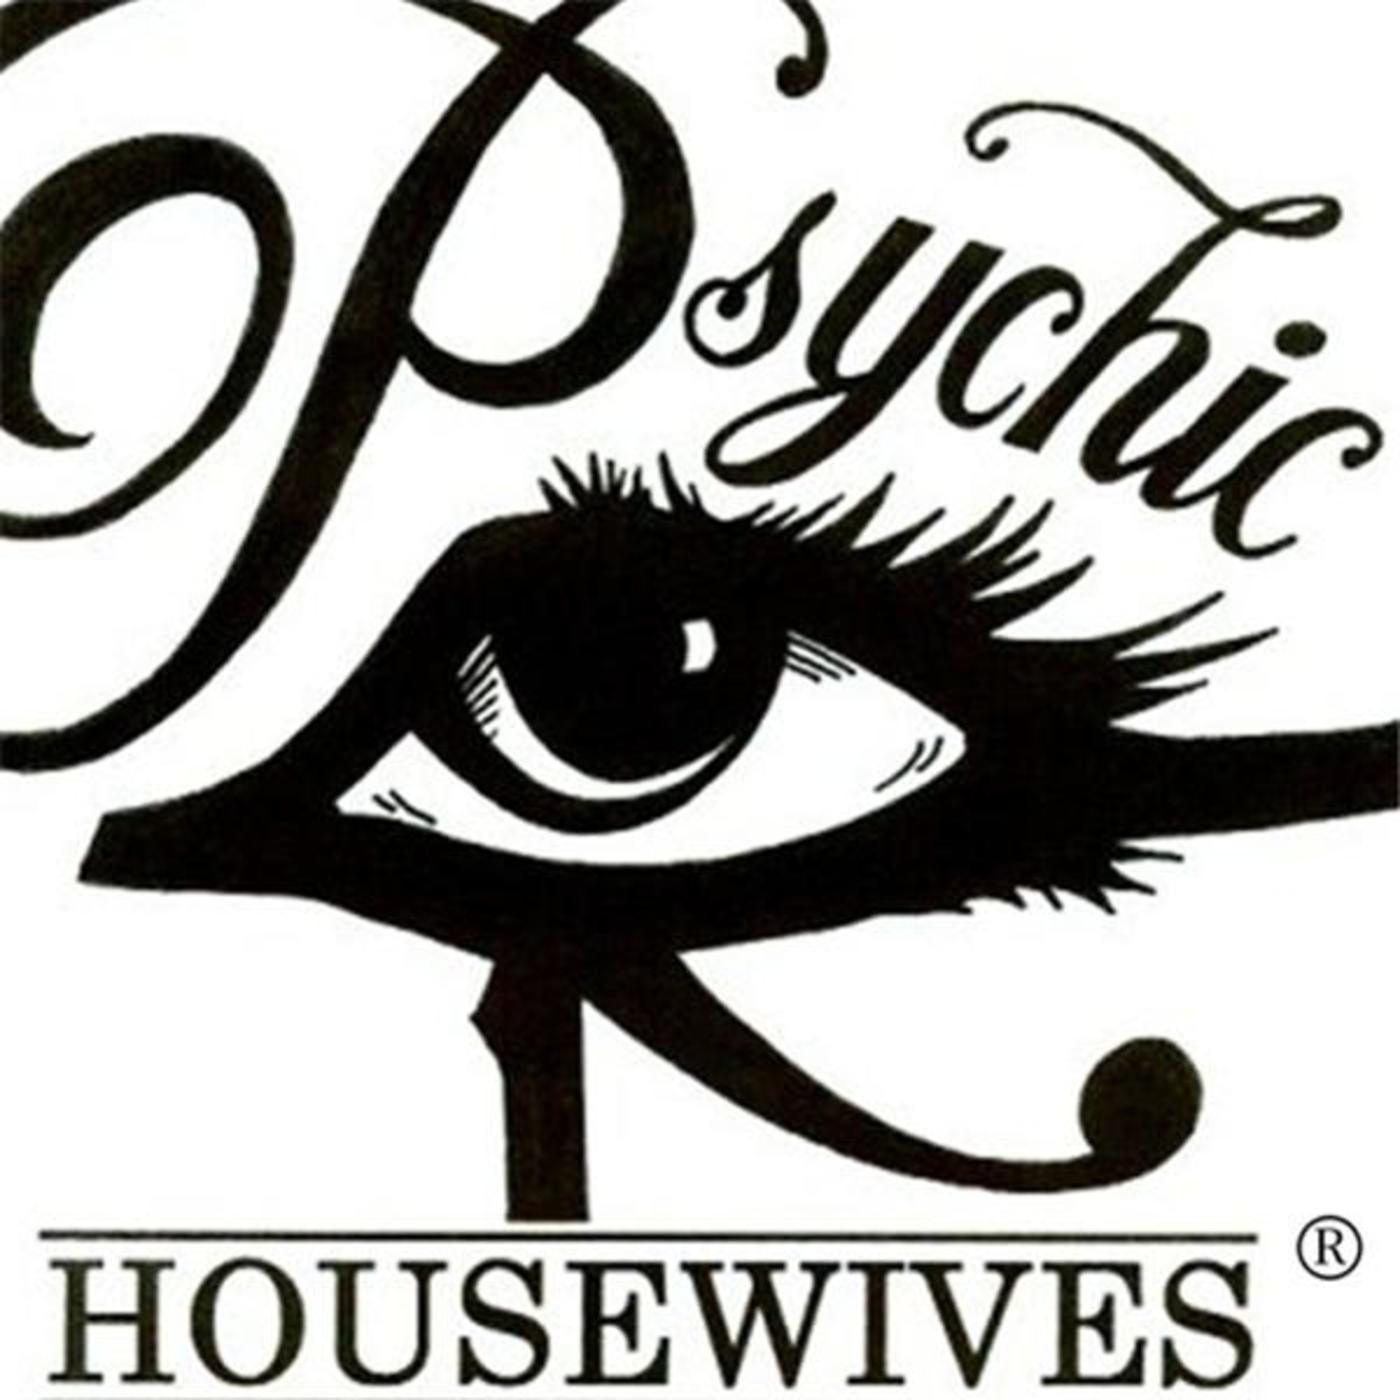 Psychic Housewives